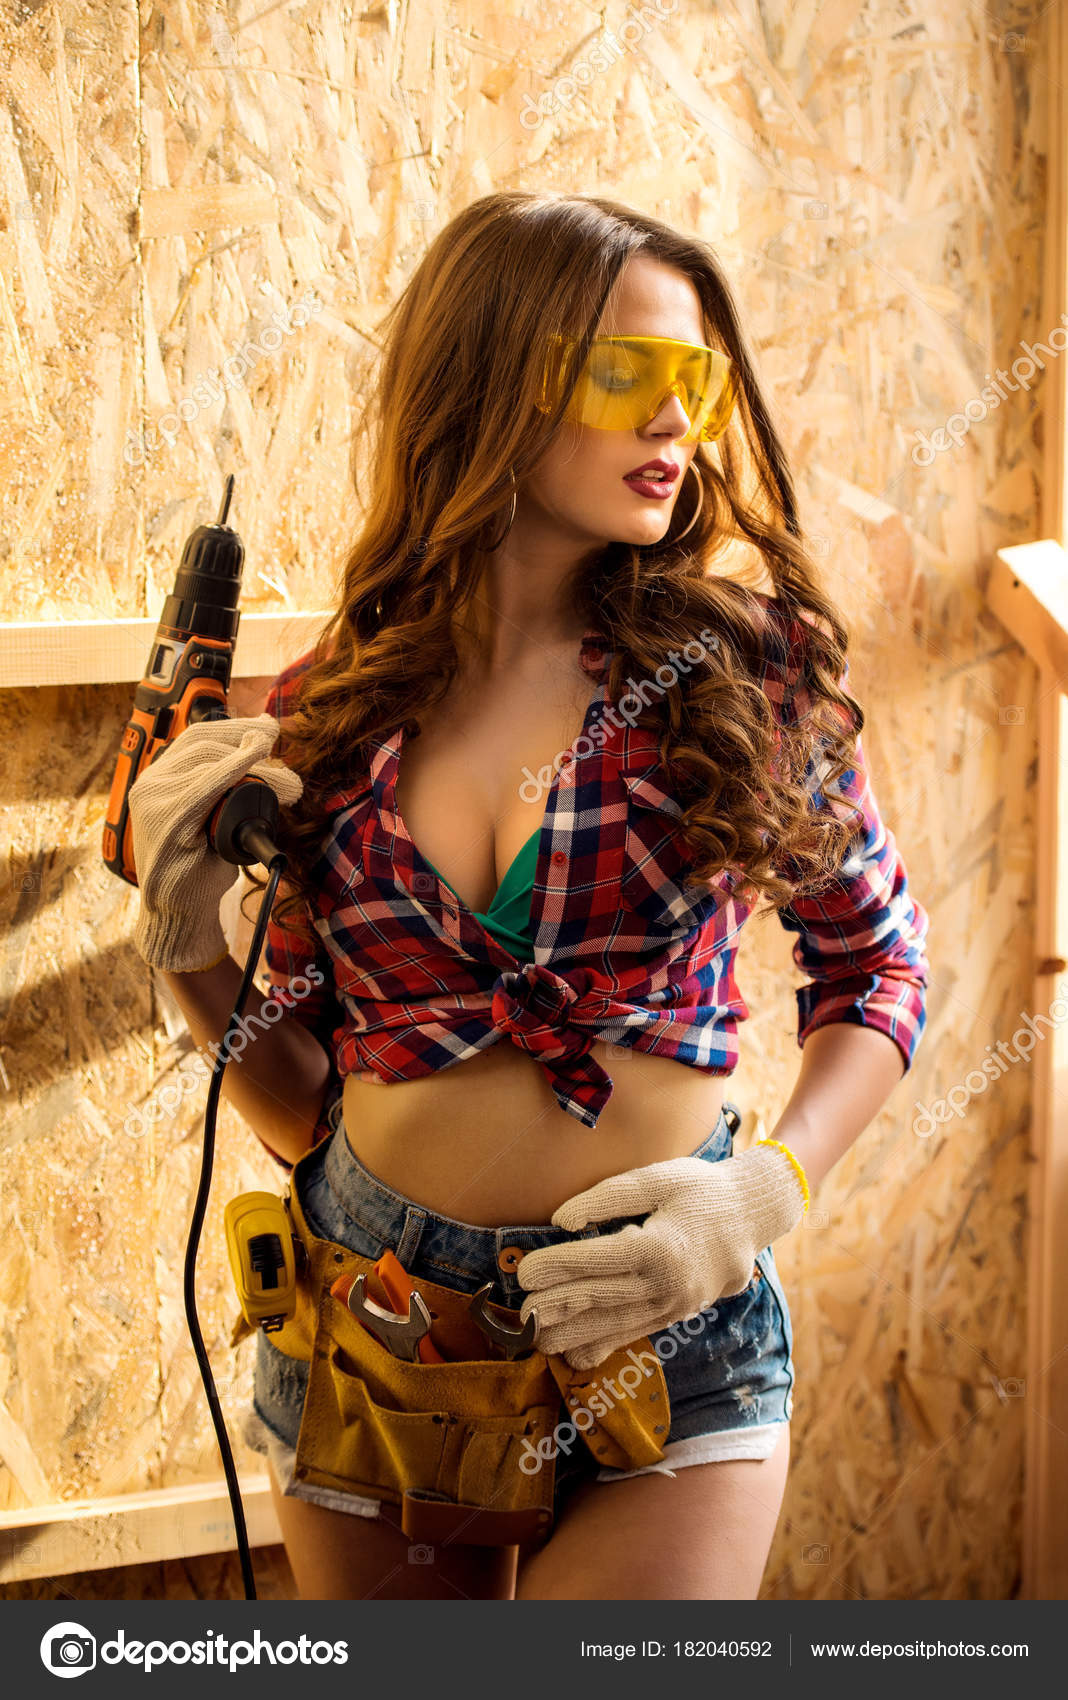 sext-nude-with-tool-belt